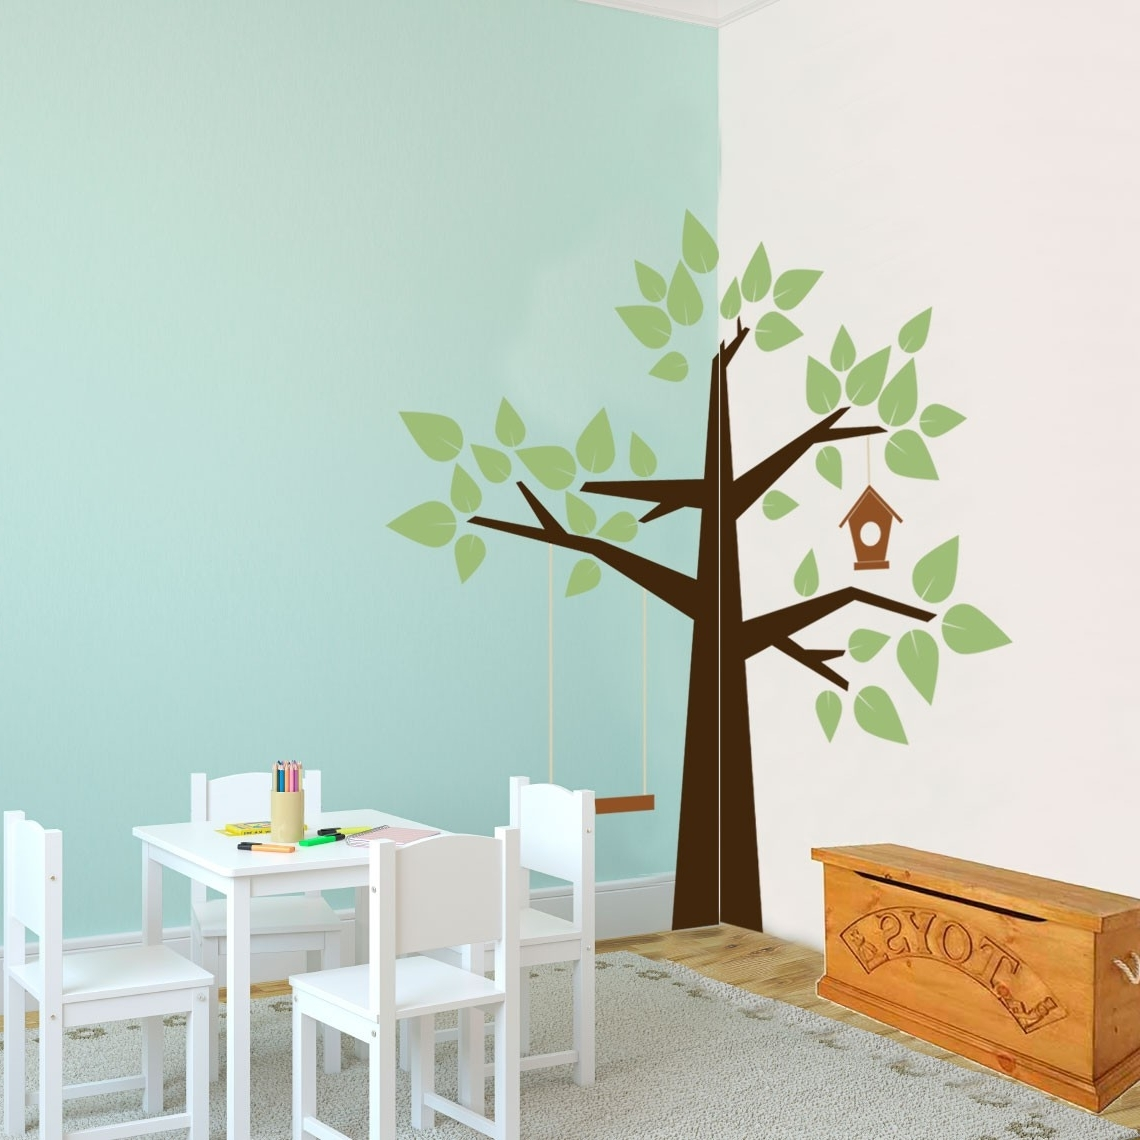 Wall Art For Kindergarten Classroom Pertaining To Most Up To Date Whimsical Corner Tree – Nature – Vinyl Wall Art Decal For Kids (View 11 of 15)